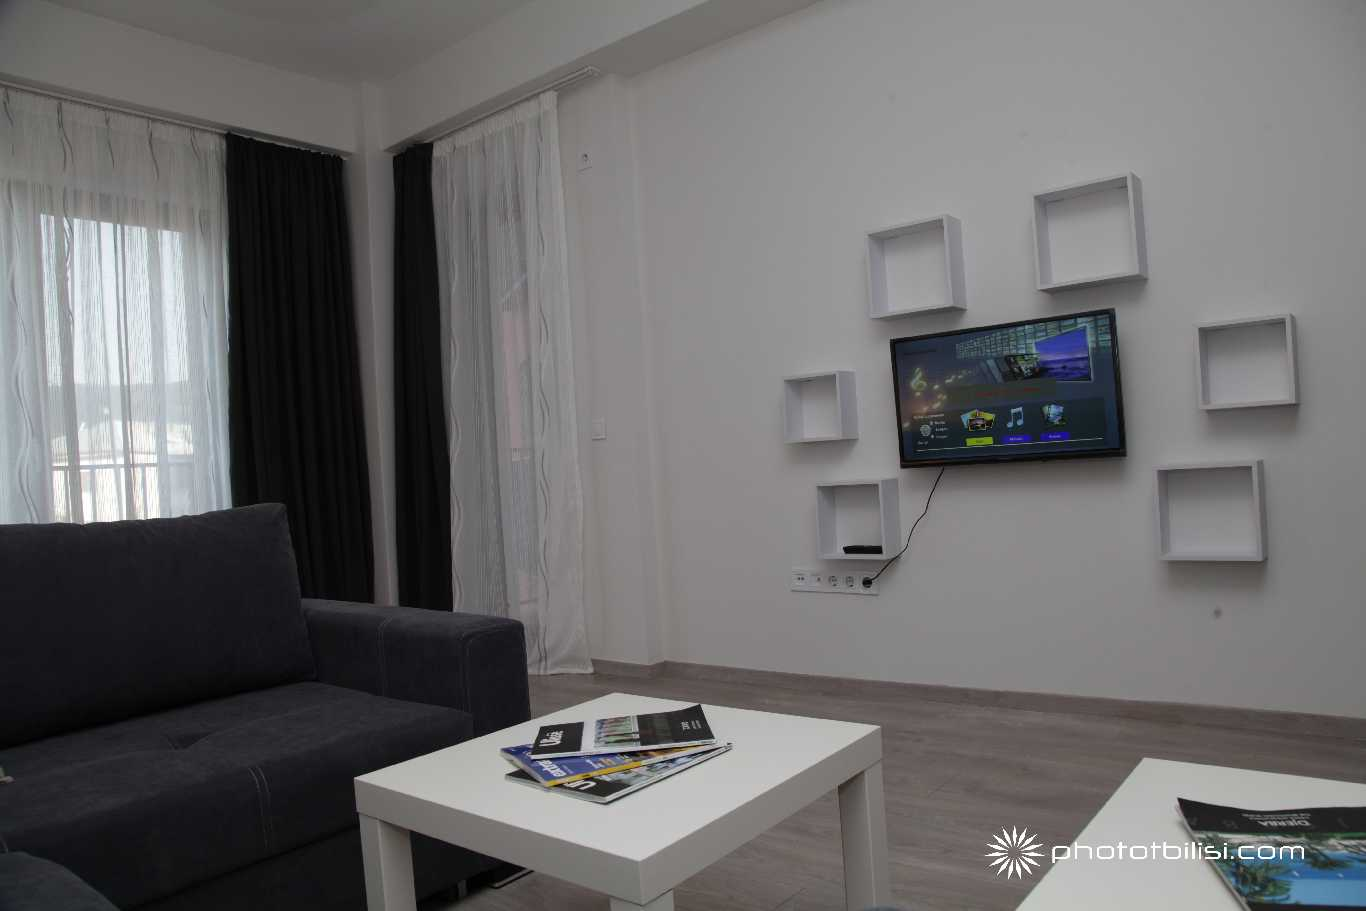 Apartment-for-rent-Tbilisi-M2-IMG_1058